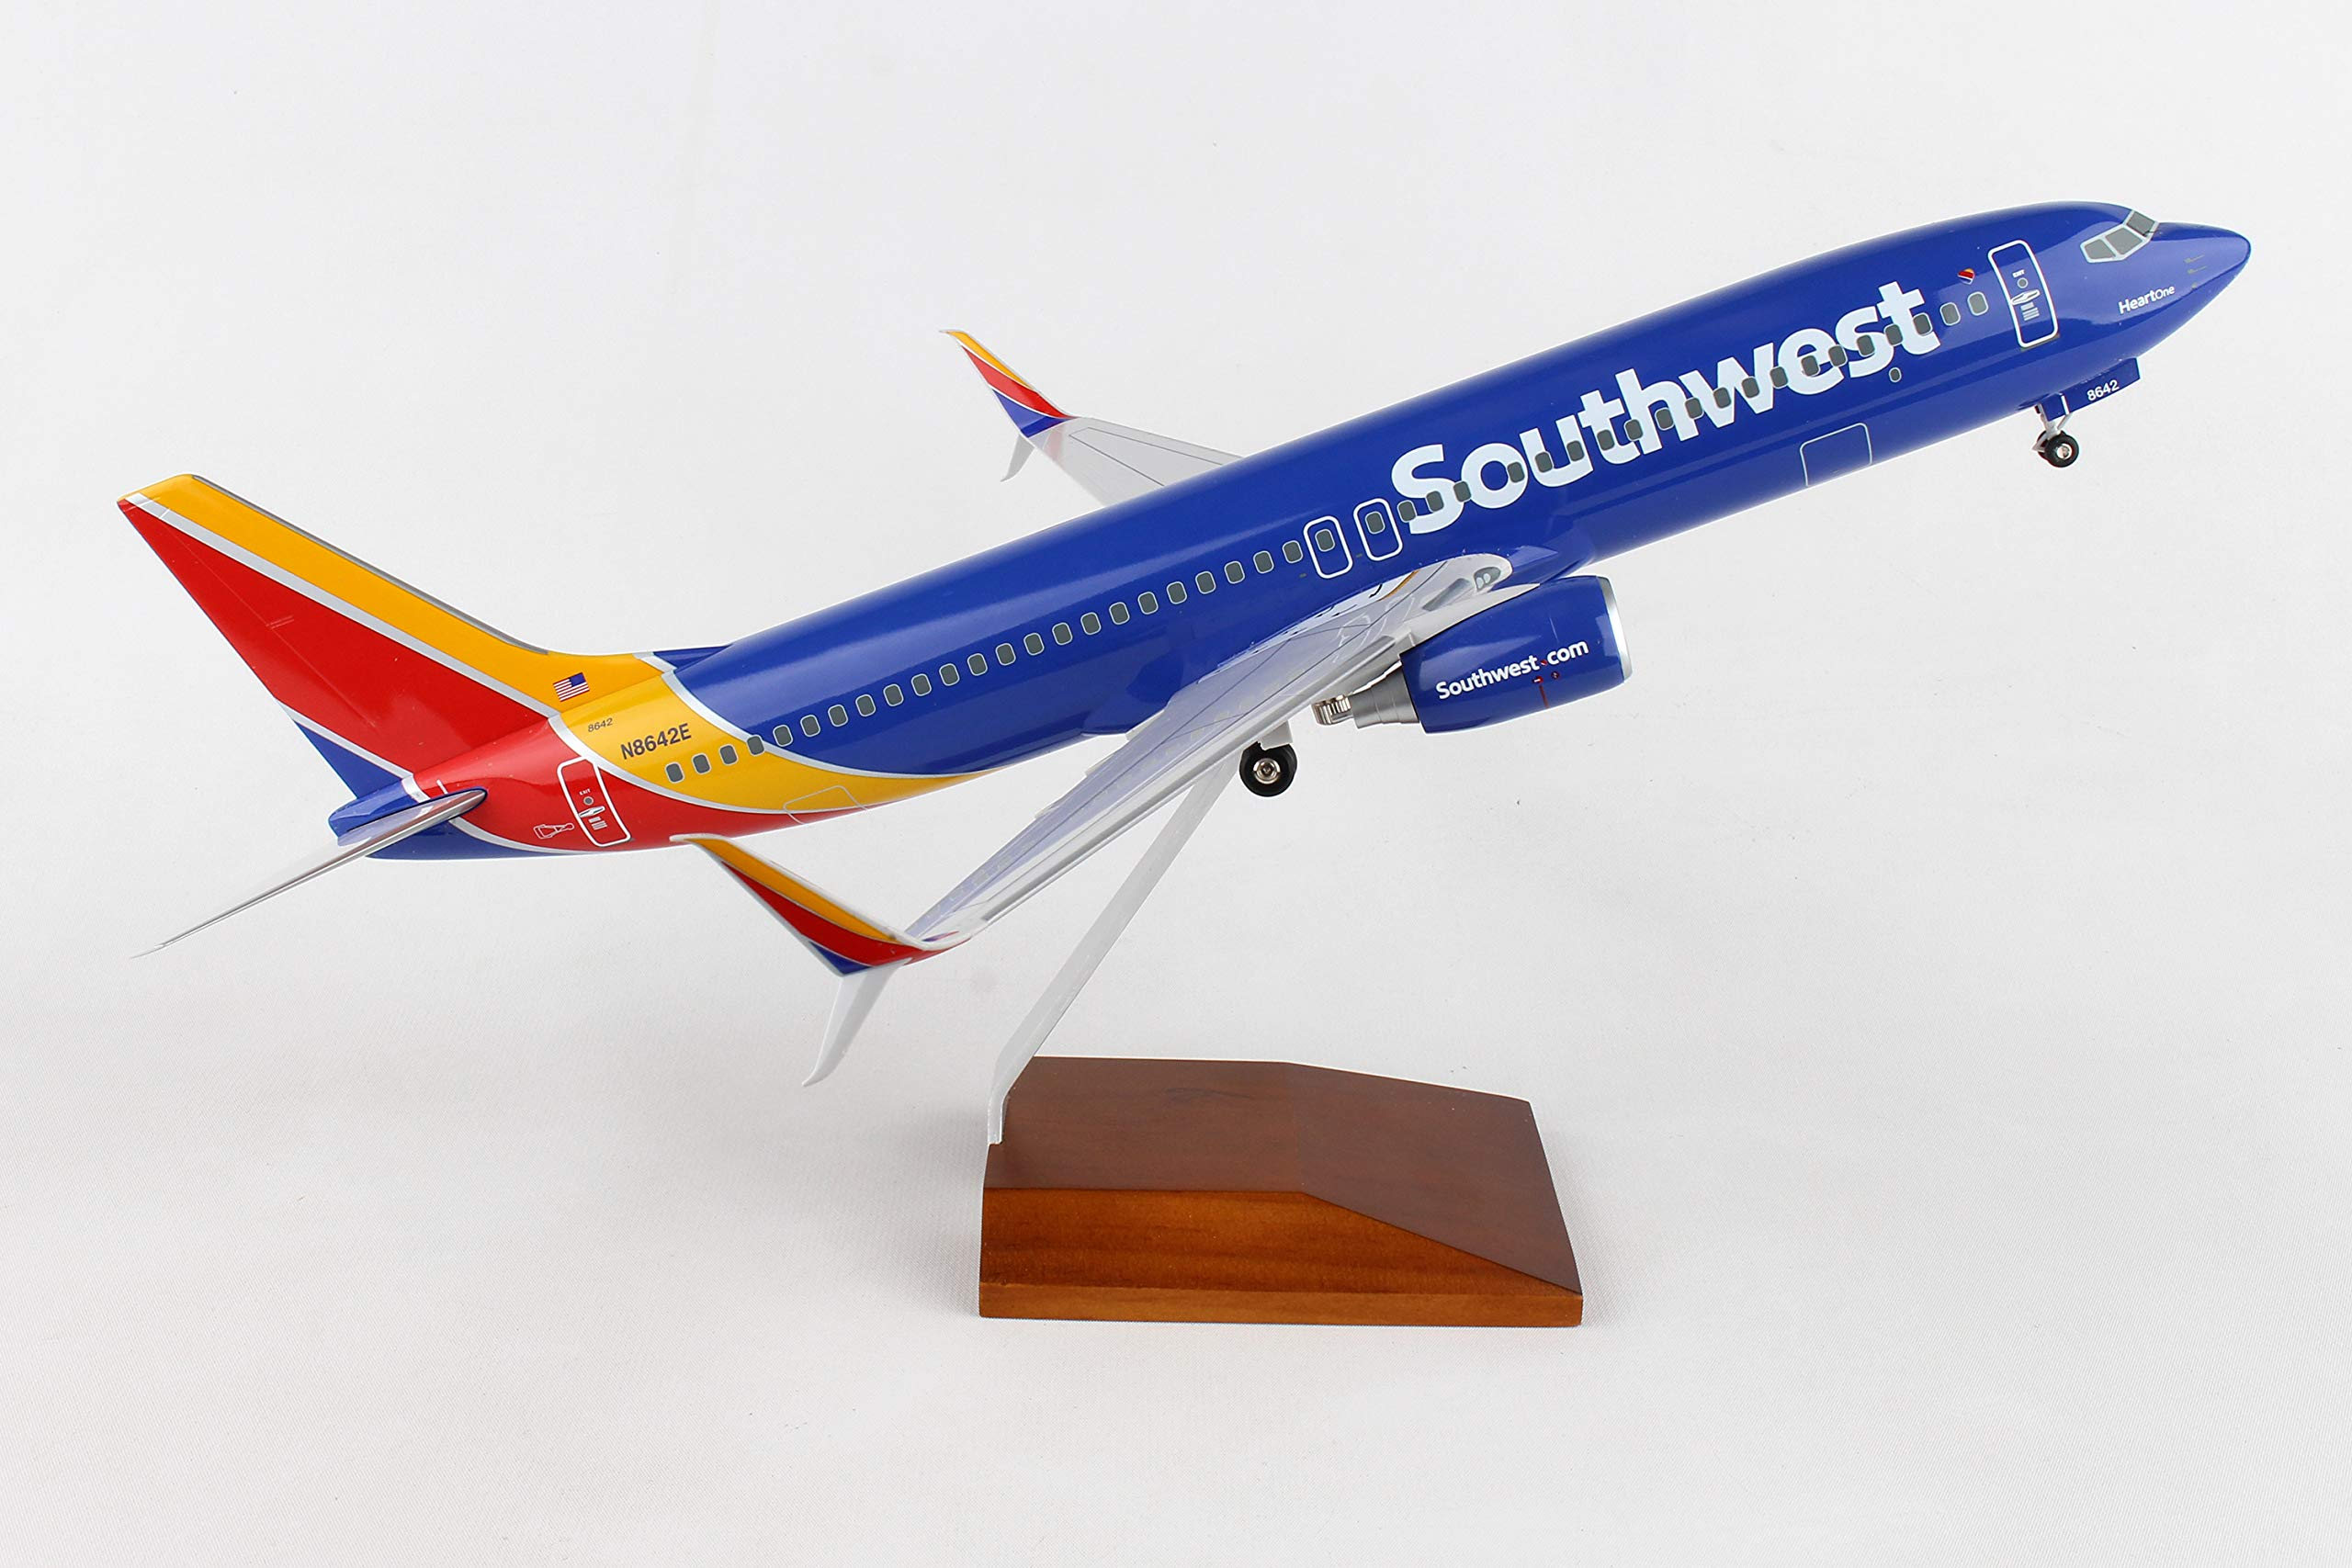 Daron 737-800 Skymarks Southwest Airplane Model with Gear & Wood Stand Heart (1/100 Scale) by Daron (Image #8)